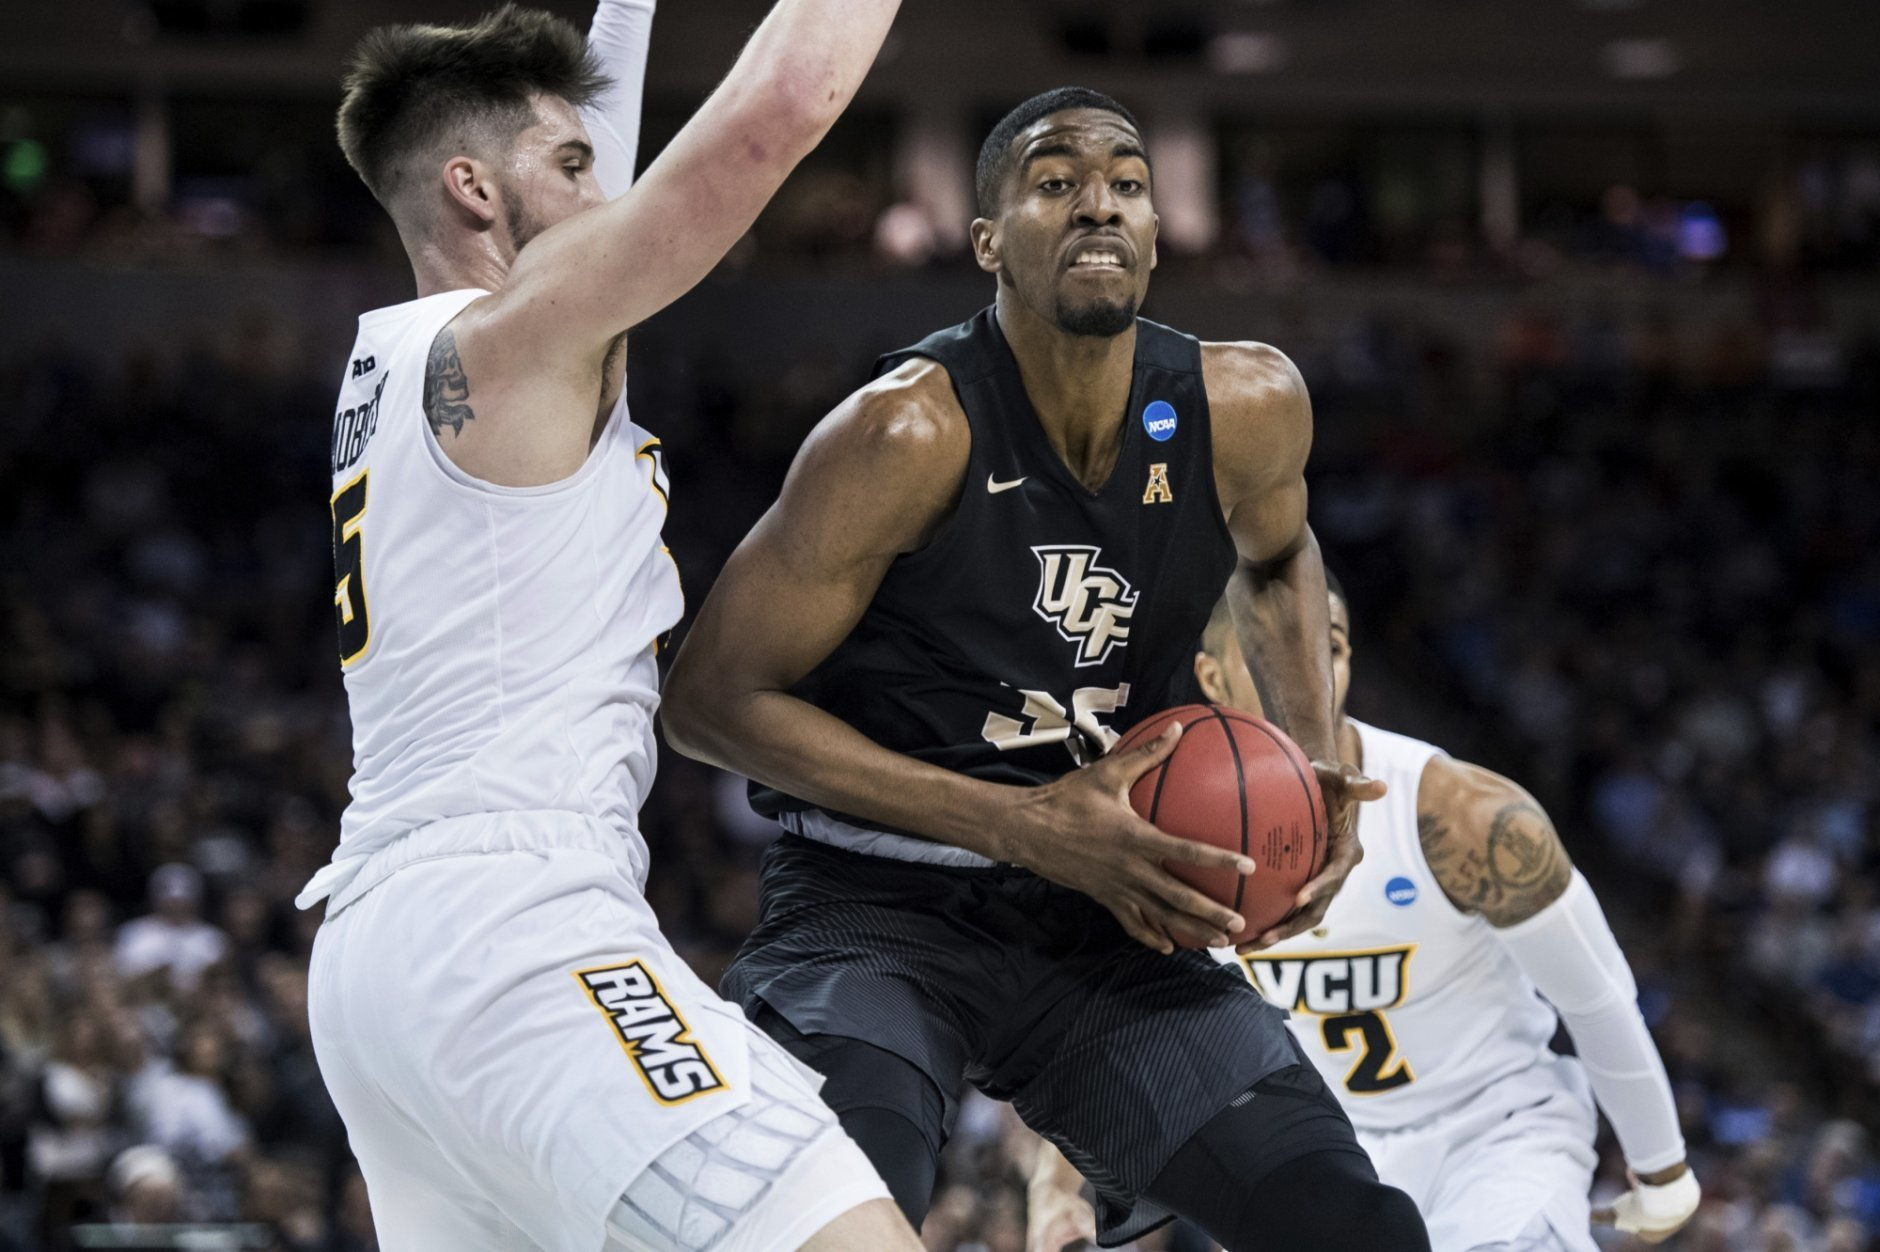 Central Florida forward Collin Smith (35) drives to the basket against VCU forward Sean Mobley (5) during the first half of a first-round game in the NCAA men's college basketball tournament Friday, March 22, 2019, in Columbia, S.C. (AP Photo/Sean Rayford)